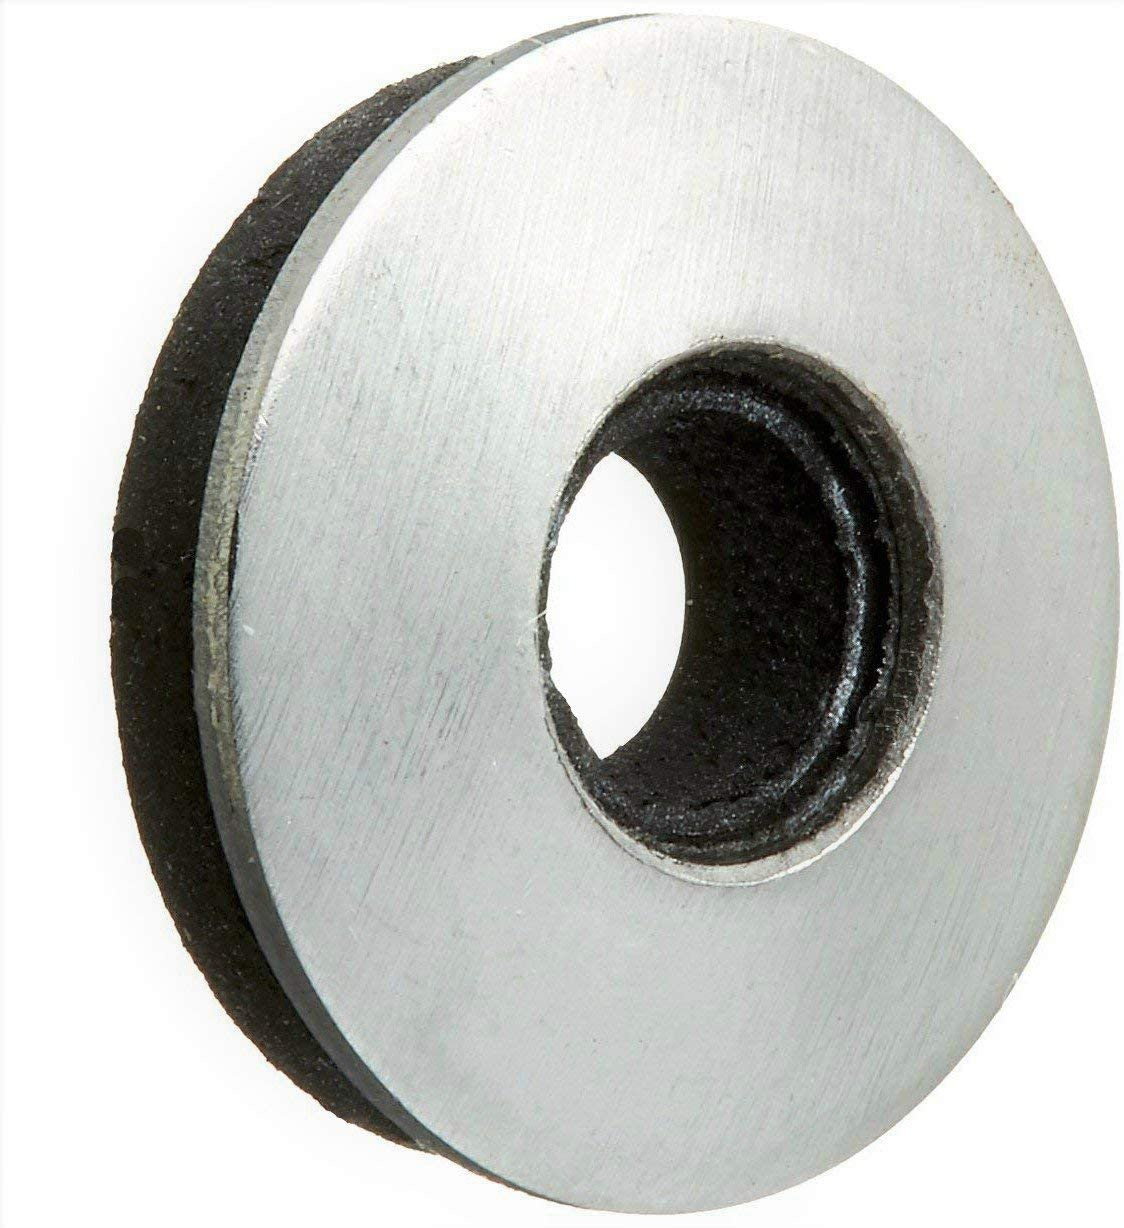 SNUG Fasteners SNG639 100 Qty #12 Max 49% OFF Steel EPDM Bonded Se Stainless Purchase